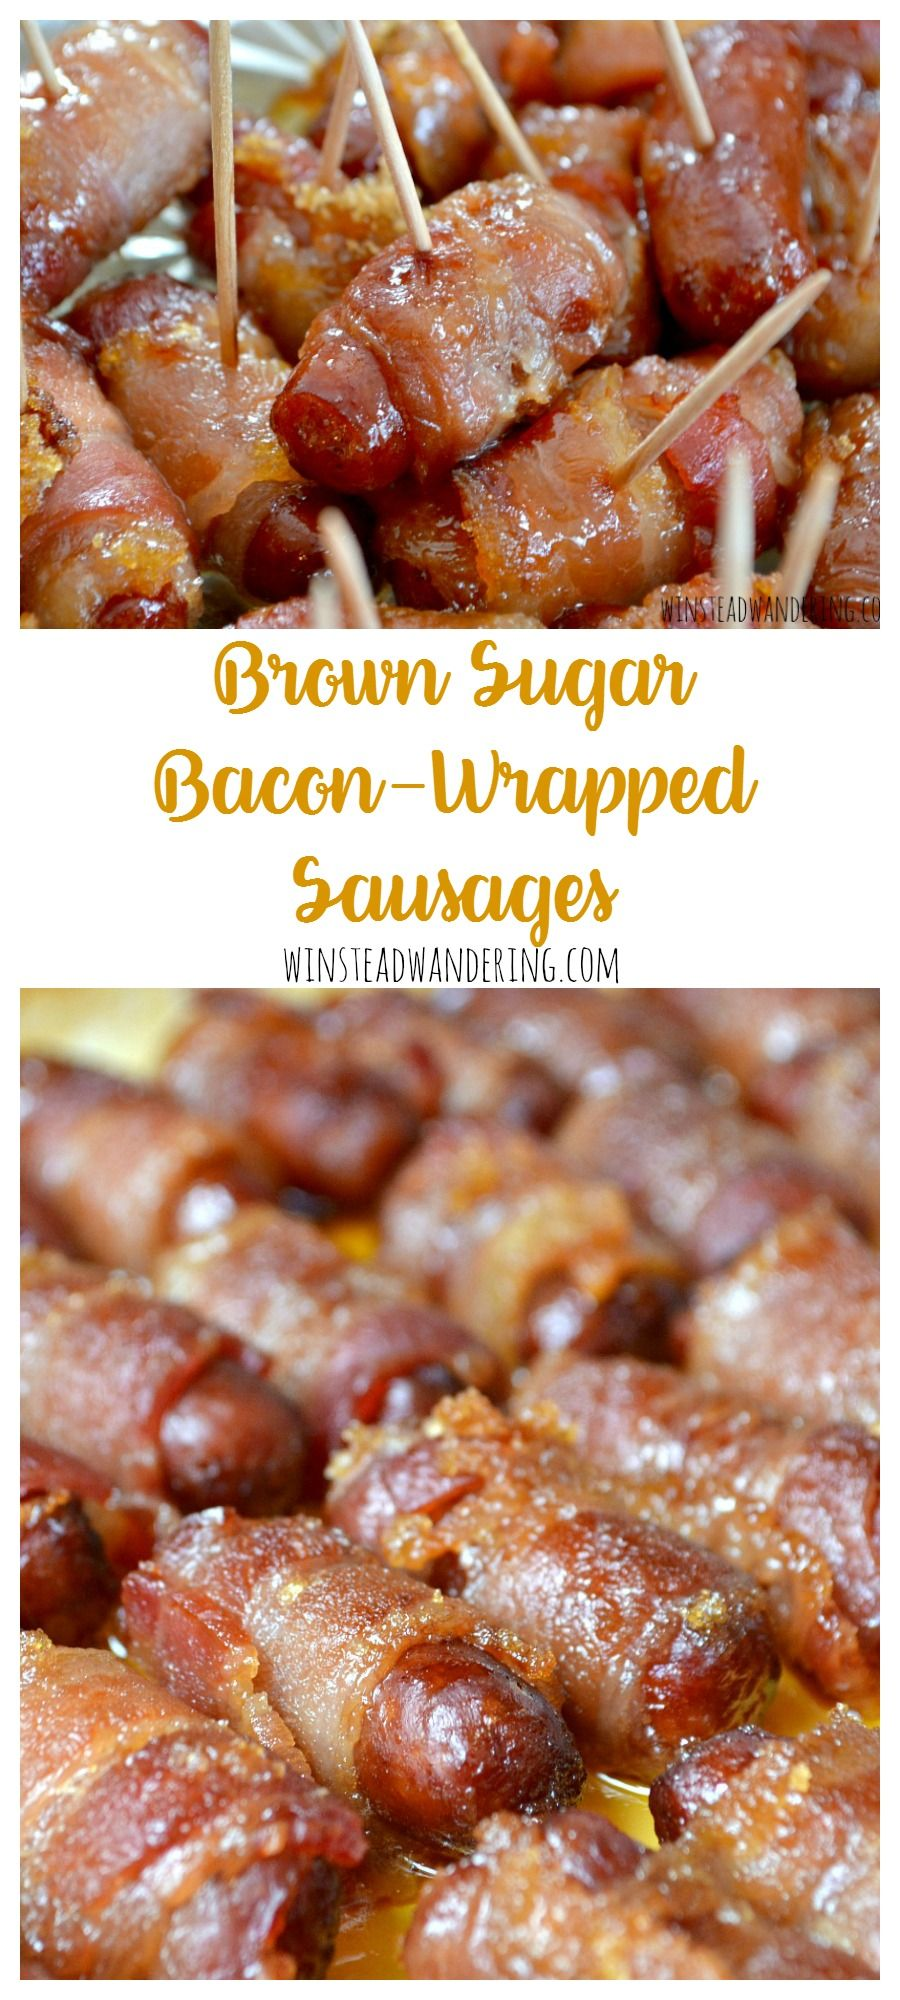 Brown Sugar Bacon-Wrapped Sausages